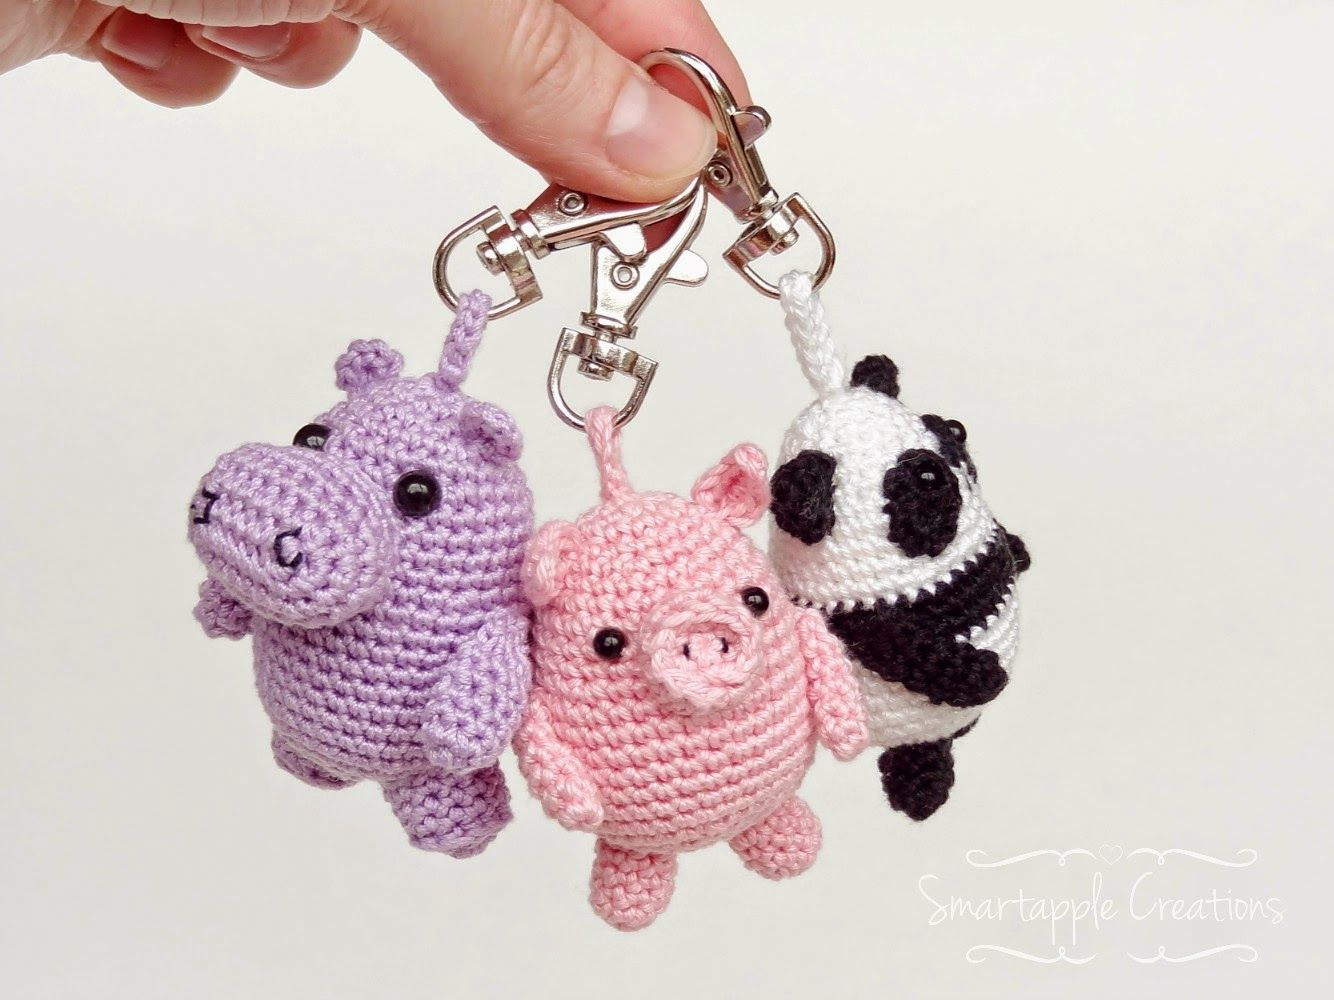 Amigurumi Crochet Keychain : Smartapple creations amigurumi and crochet amigurumi key chains